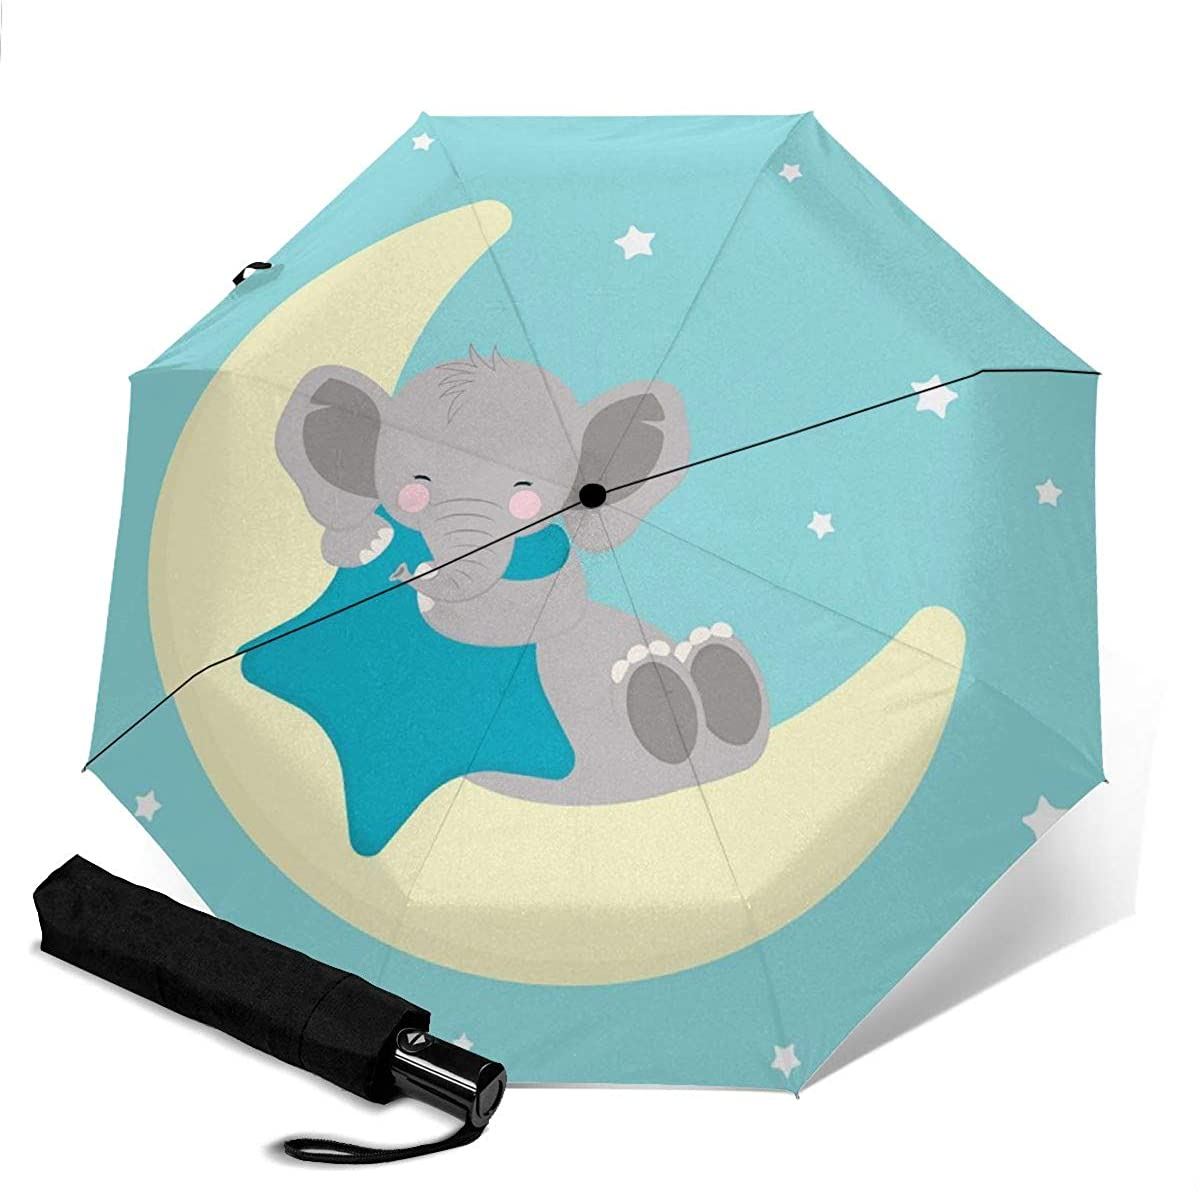 Cute Elephant Baby Sleeping On The Moon Compact Travel Umbrella Windproof Reinforced Canopy 8 Ribs Umbrella Auto Open And Close Button Personalized